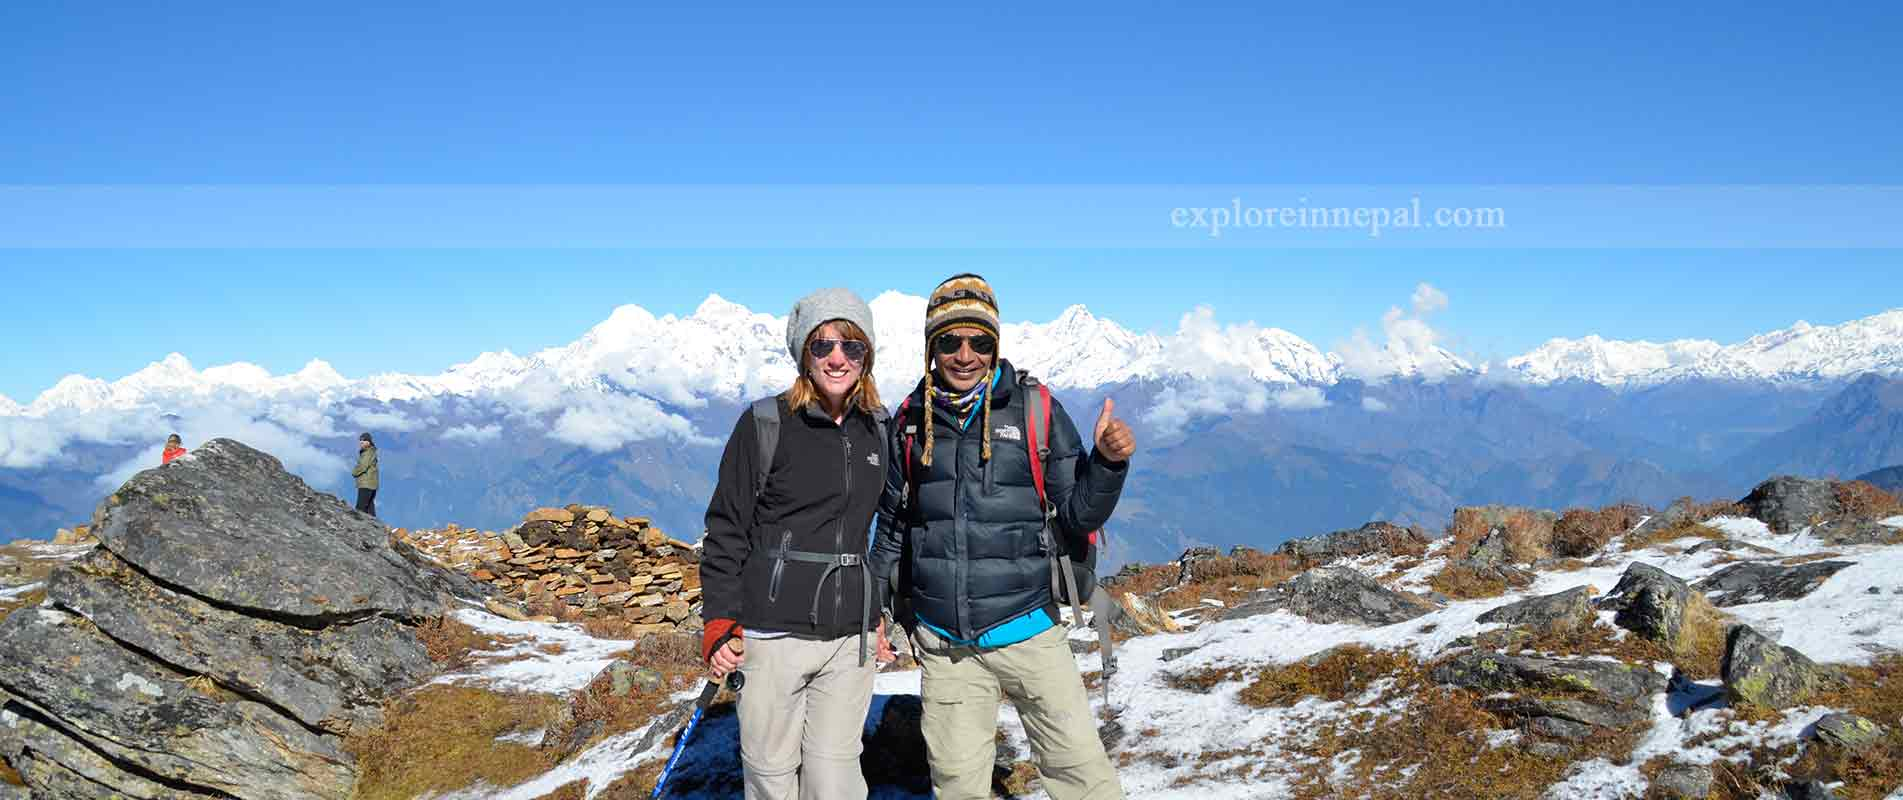 View from Laurebinae pass to Langtang valley / Ganesh Himal and annapurna range from distance